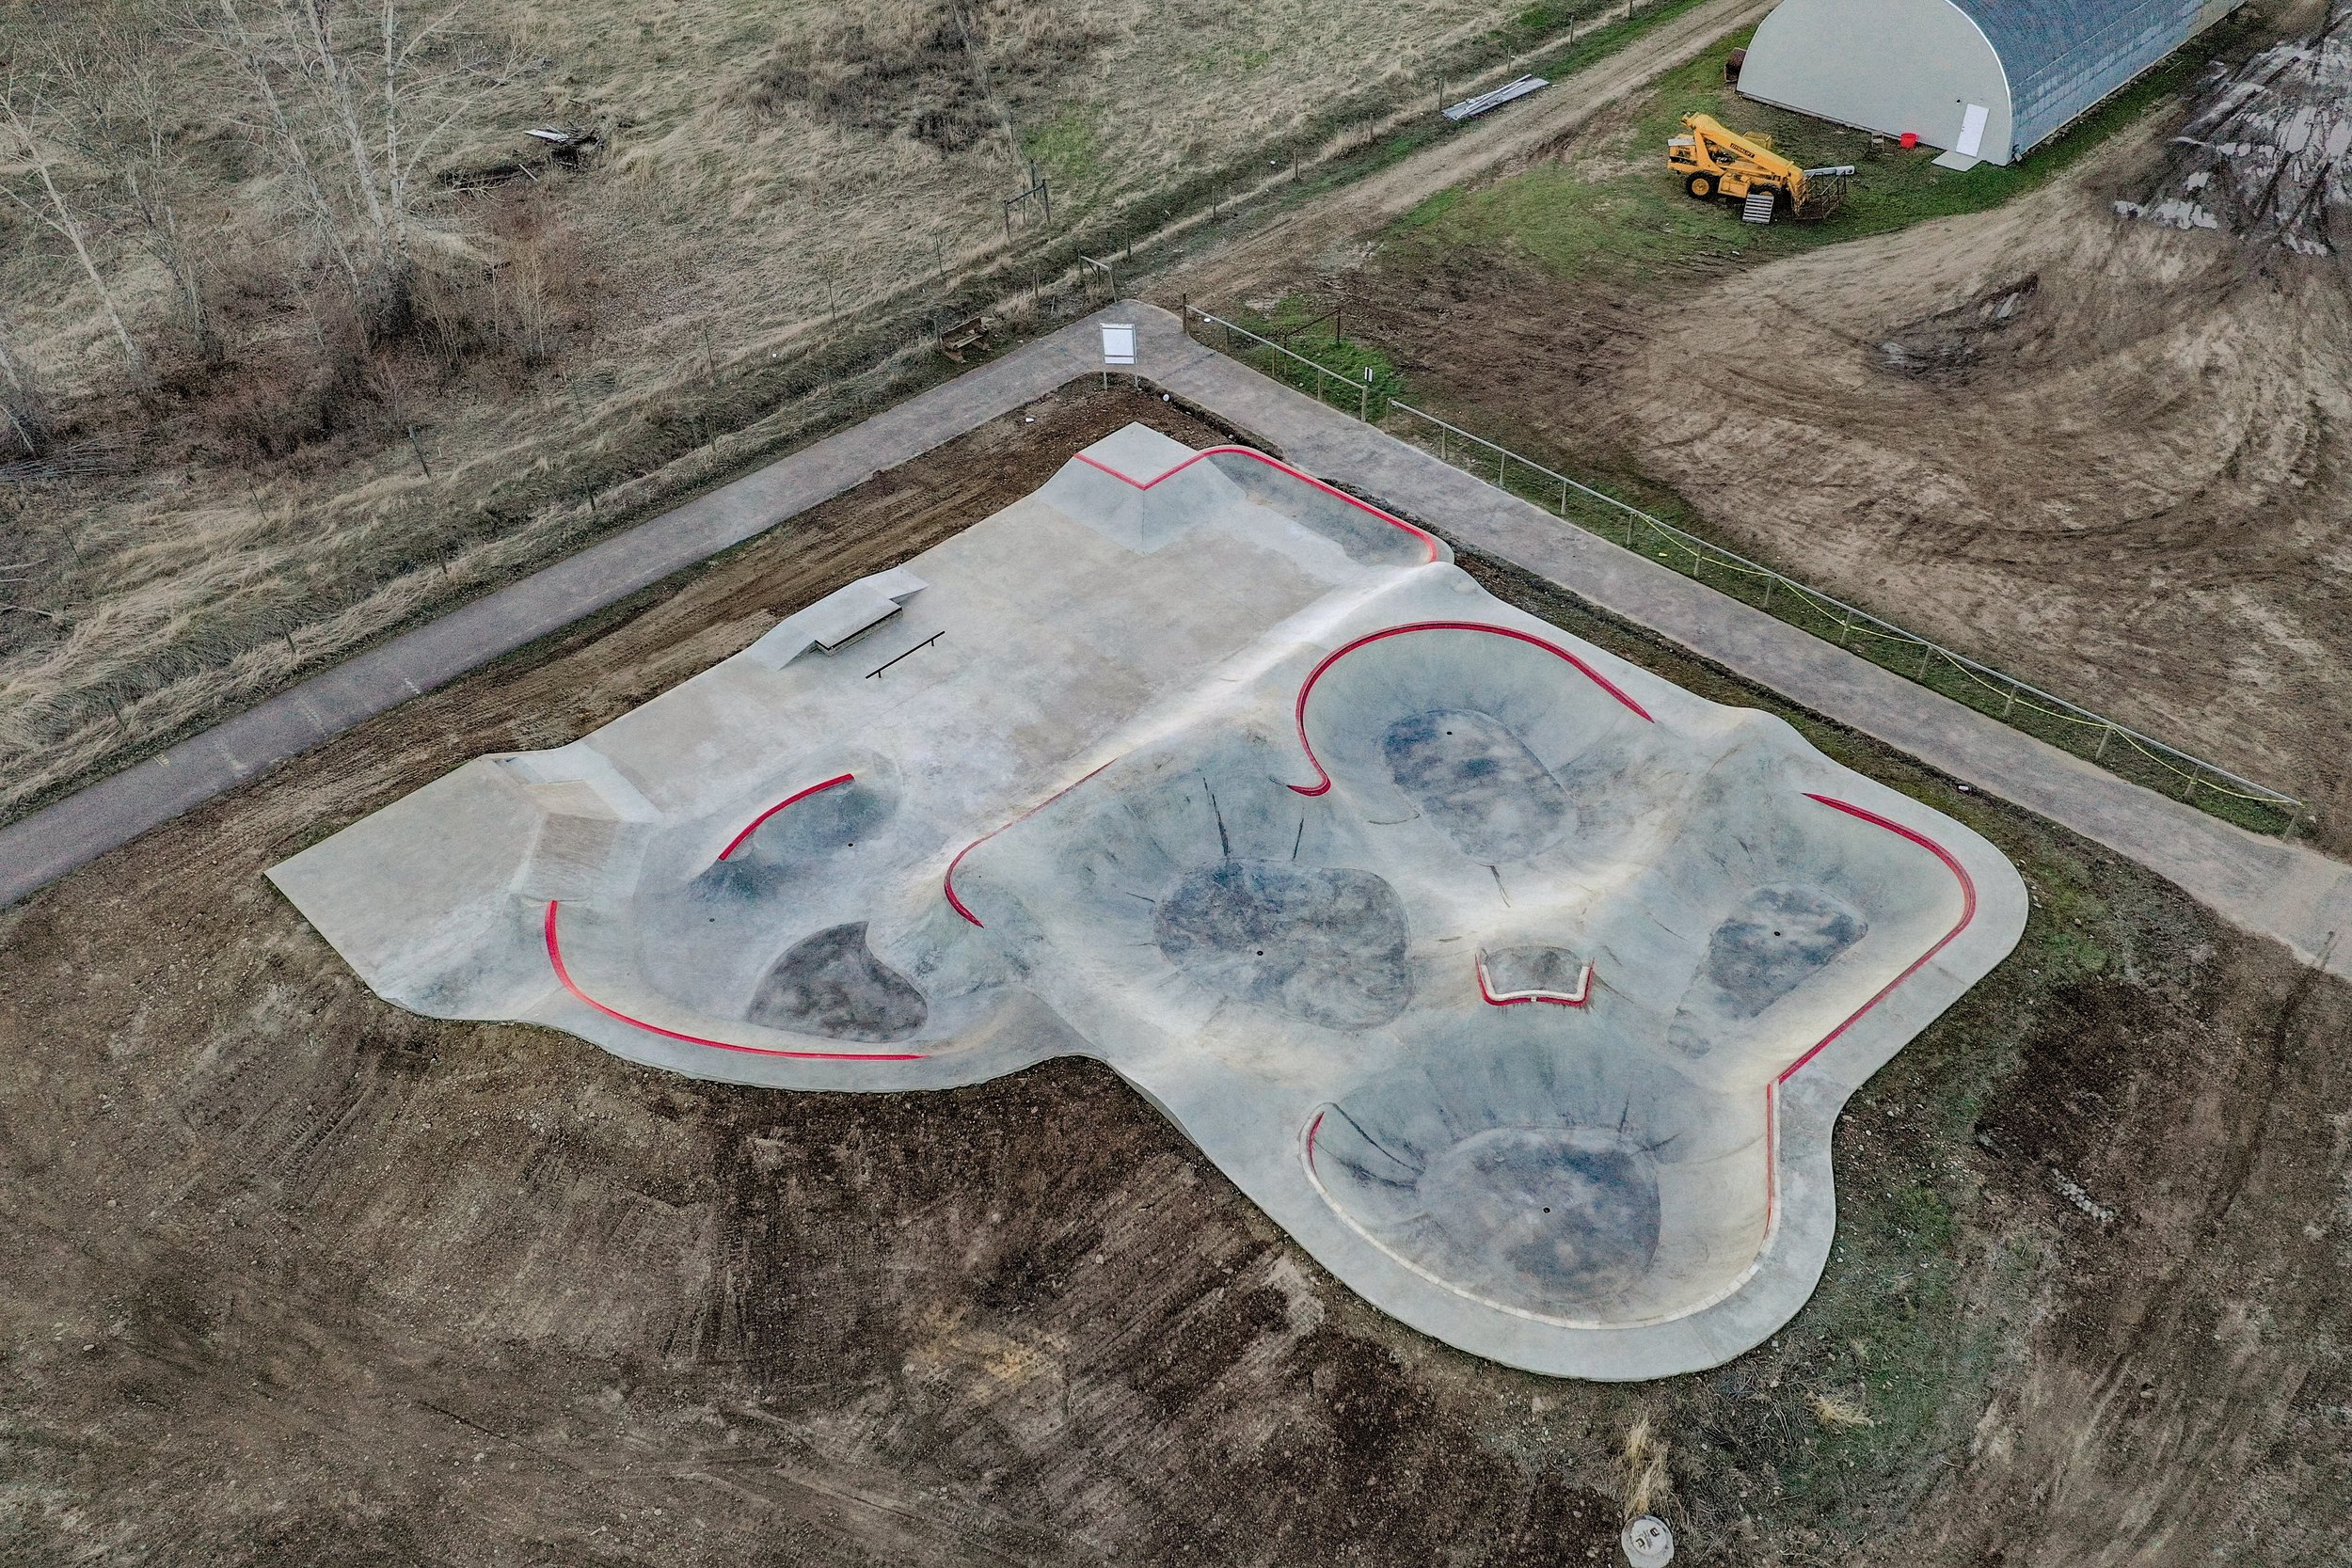 The existing concrete slab at the Darby, Montana skatepark got an upgrade this spring. Another #skateparkrecycling ♻️ project. Courtesy of @mtskateparkassociation 💯